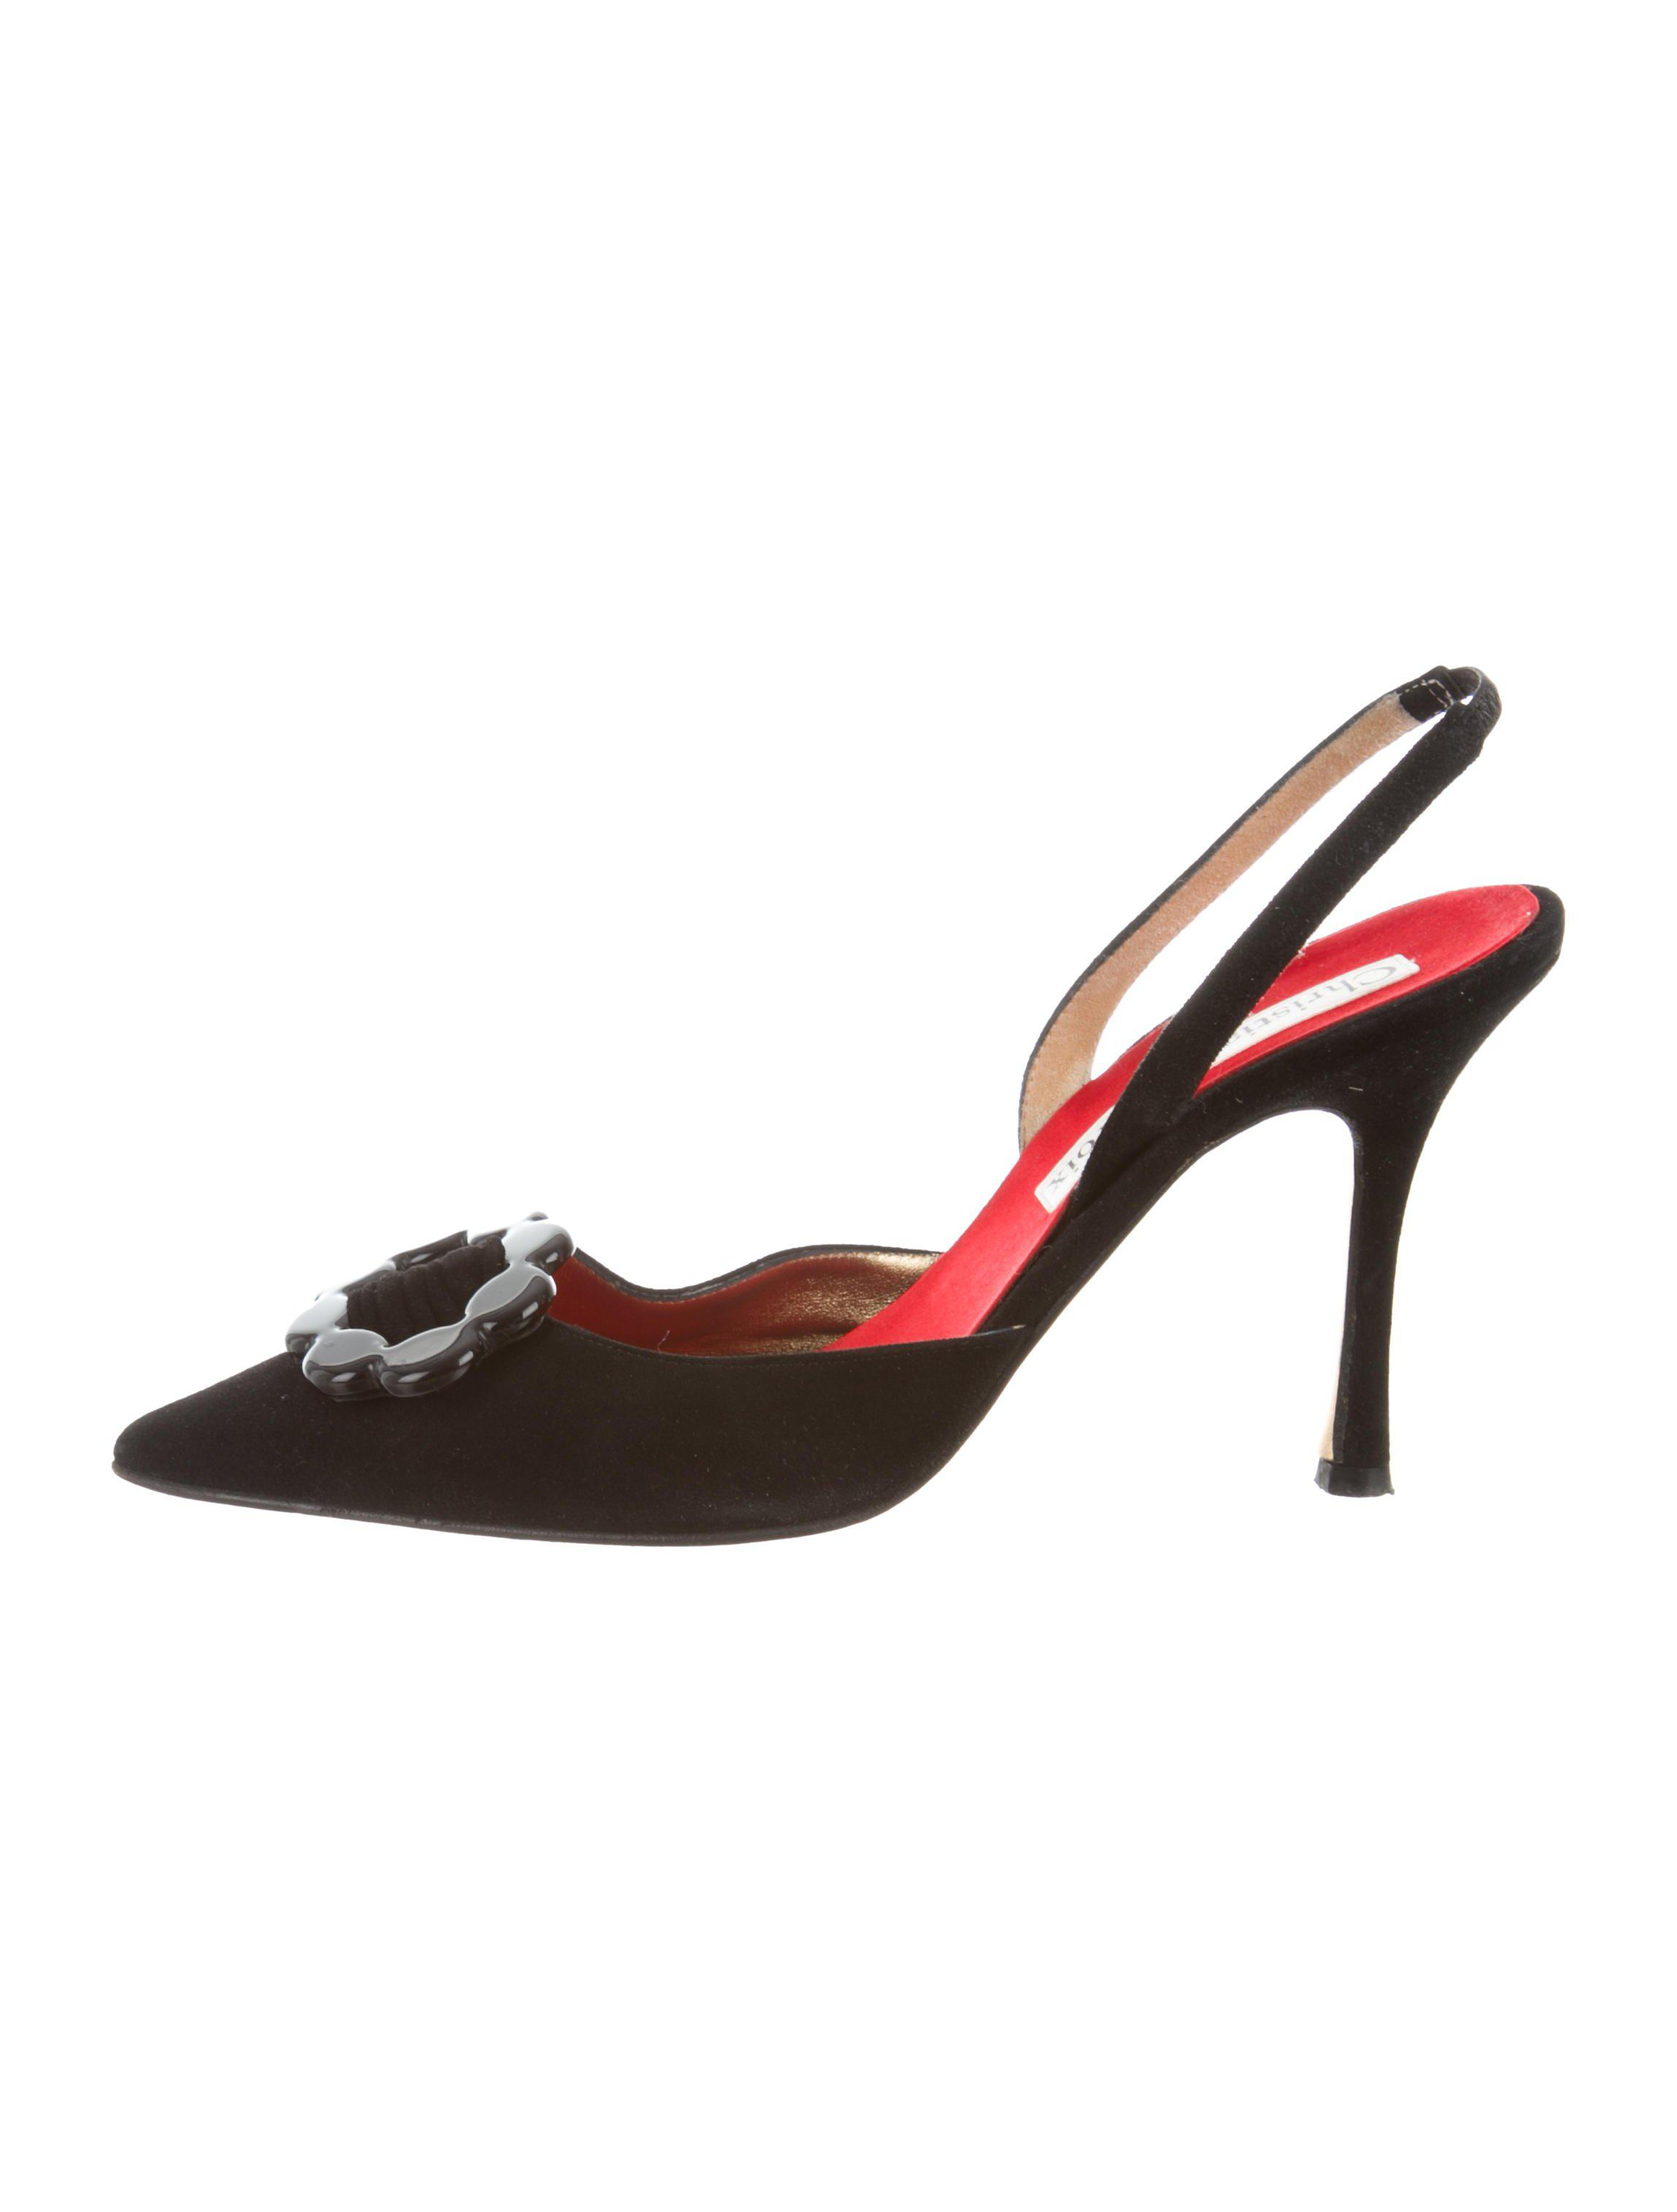 store with big discount cheap shop for Christian Lacroix Suede Slingback Pumps svwTcI